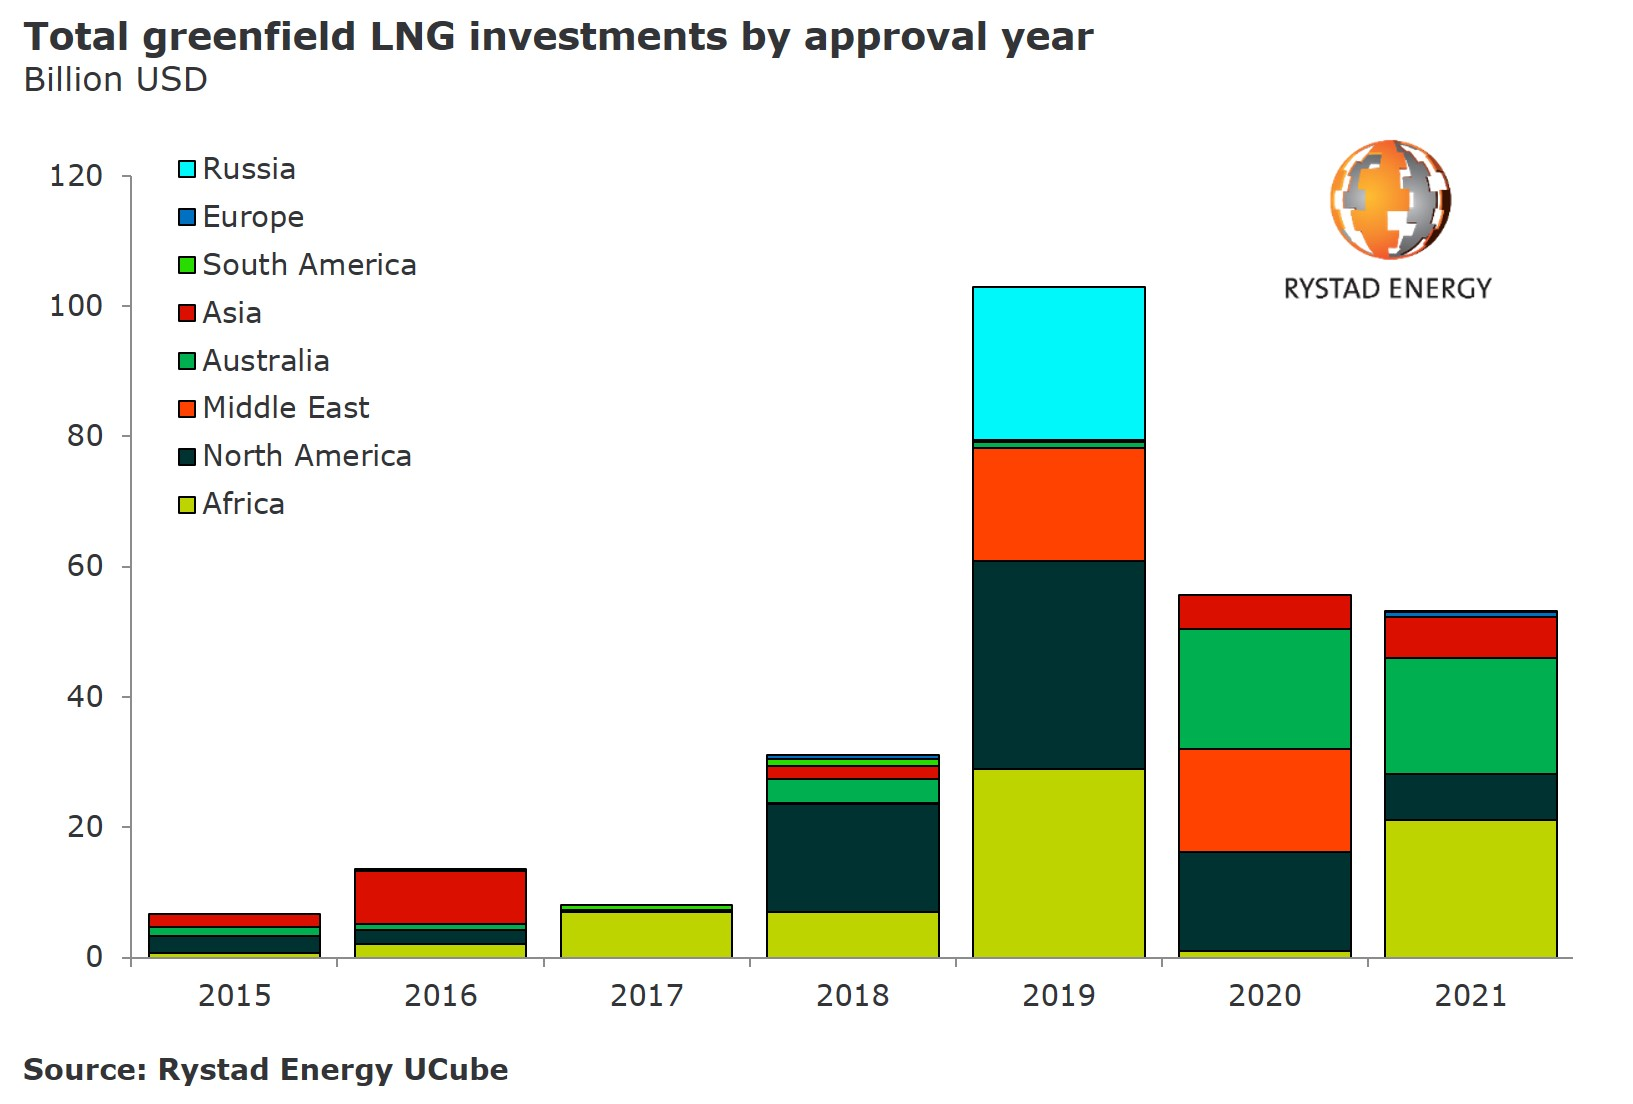 20190627_PR Chart LNG total greenfield investments by year 2015-2021.jpg